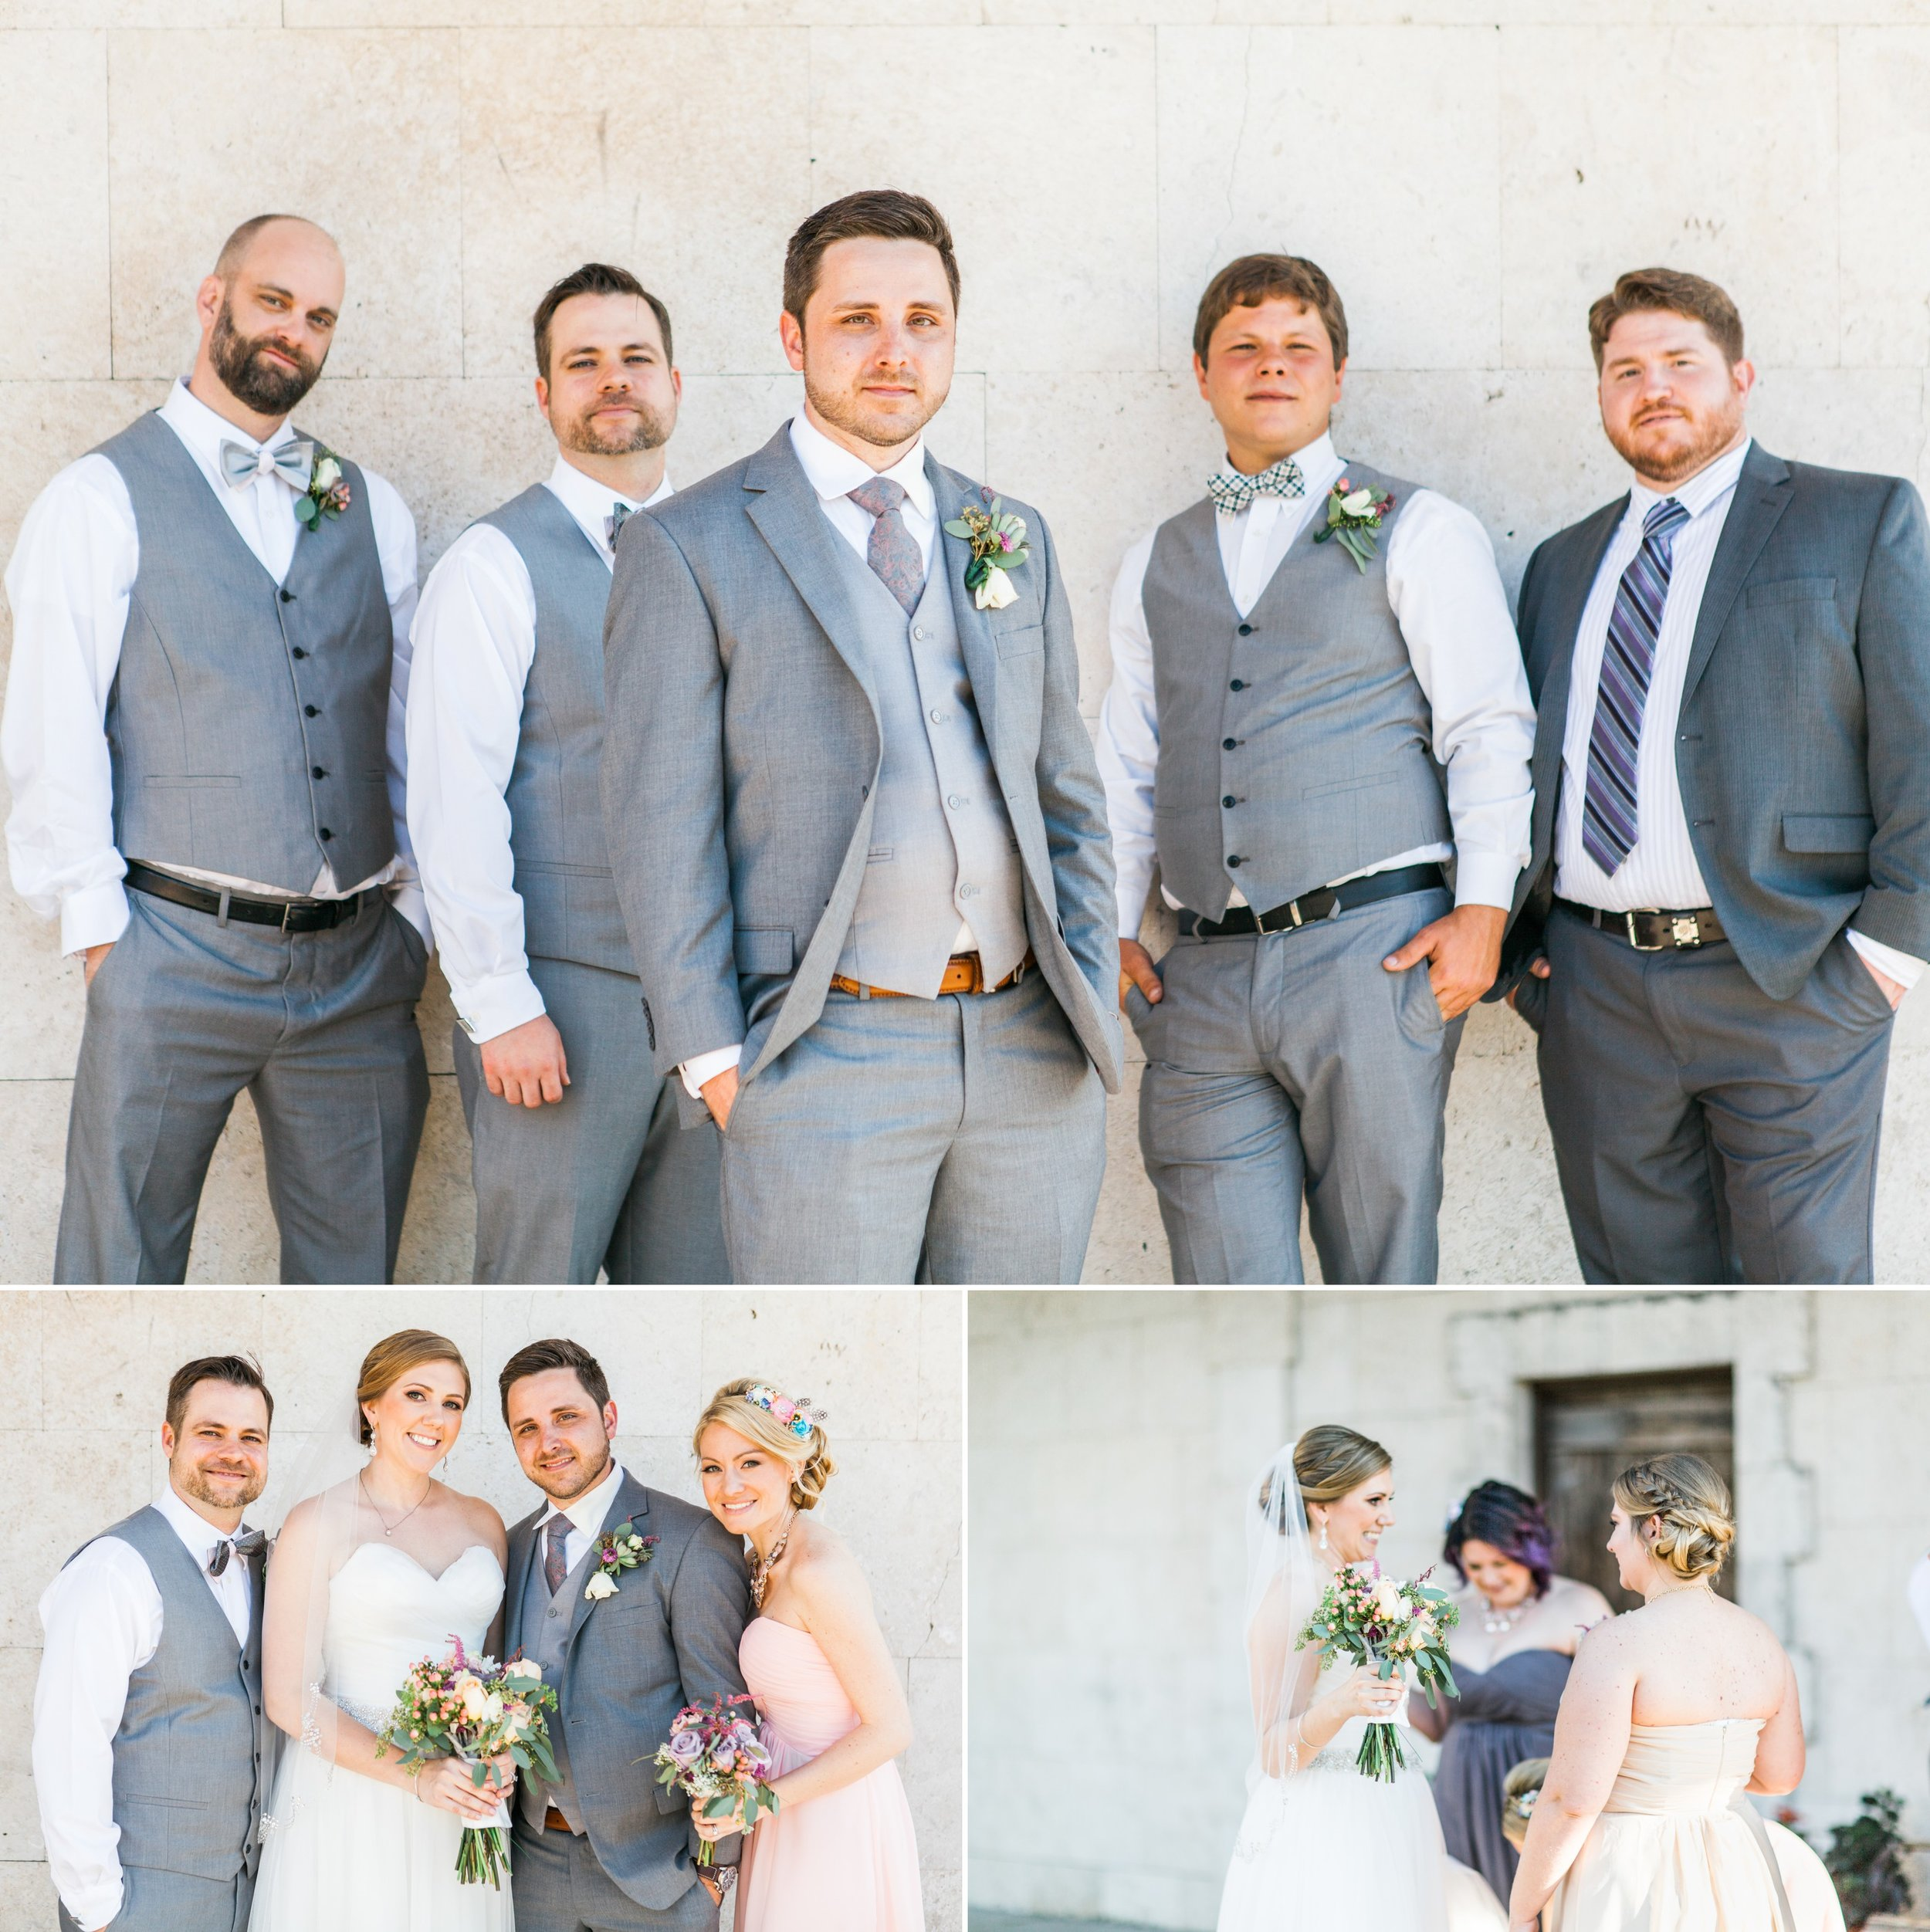 Bridal party group photos of groomsmen and bridesmaids in blush lavender gowns in Winter Park Farmers Market Wedding